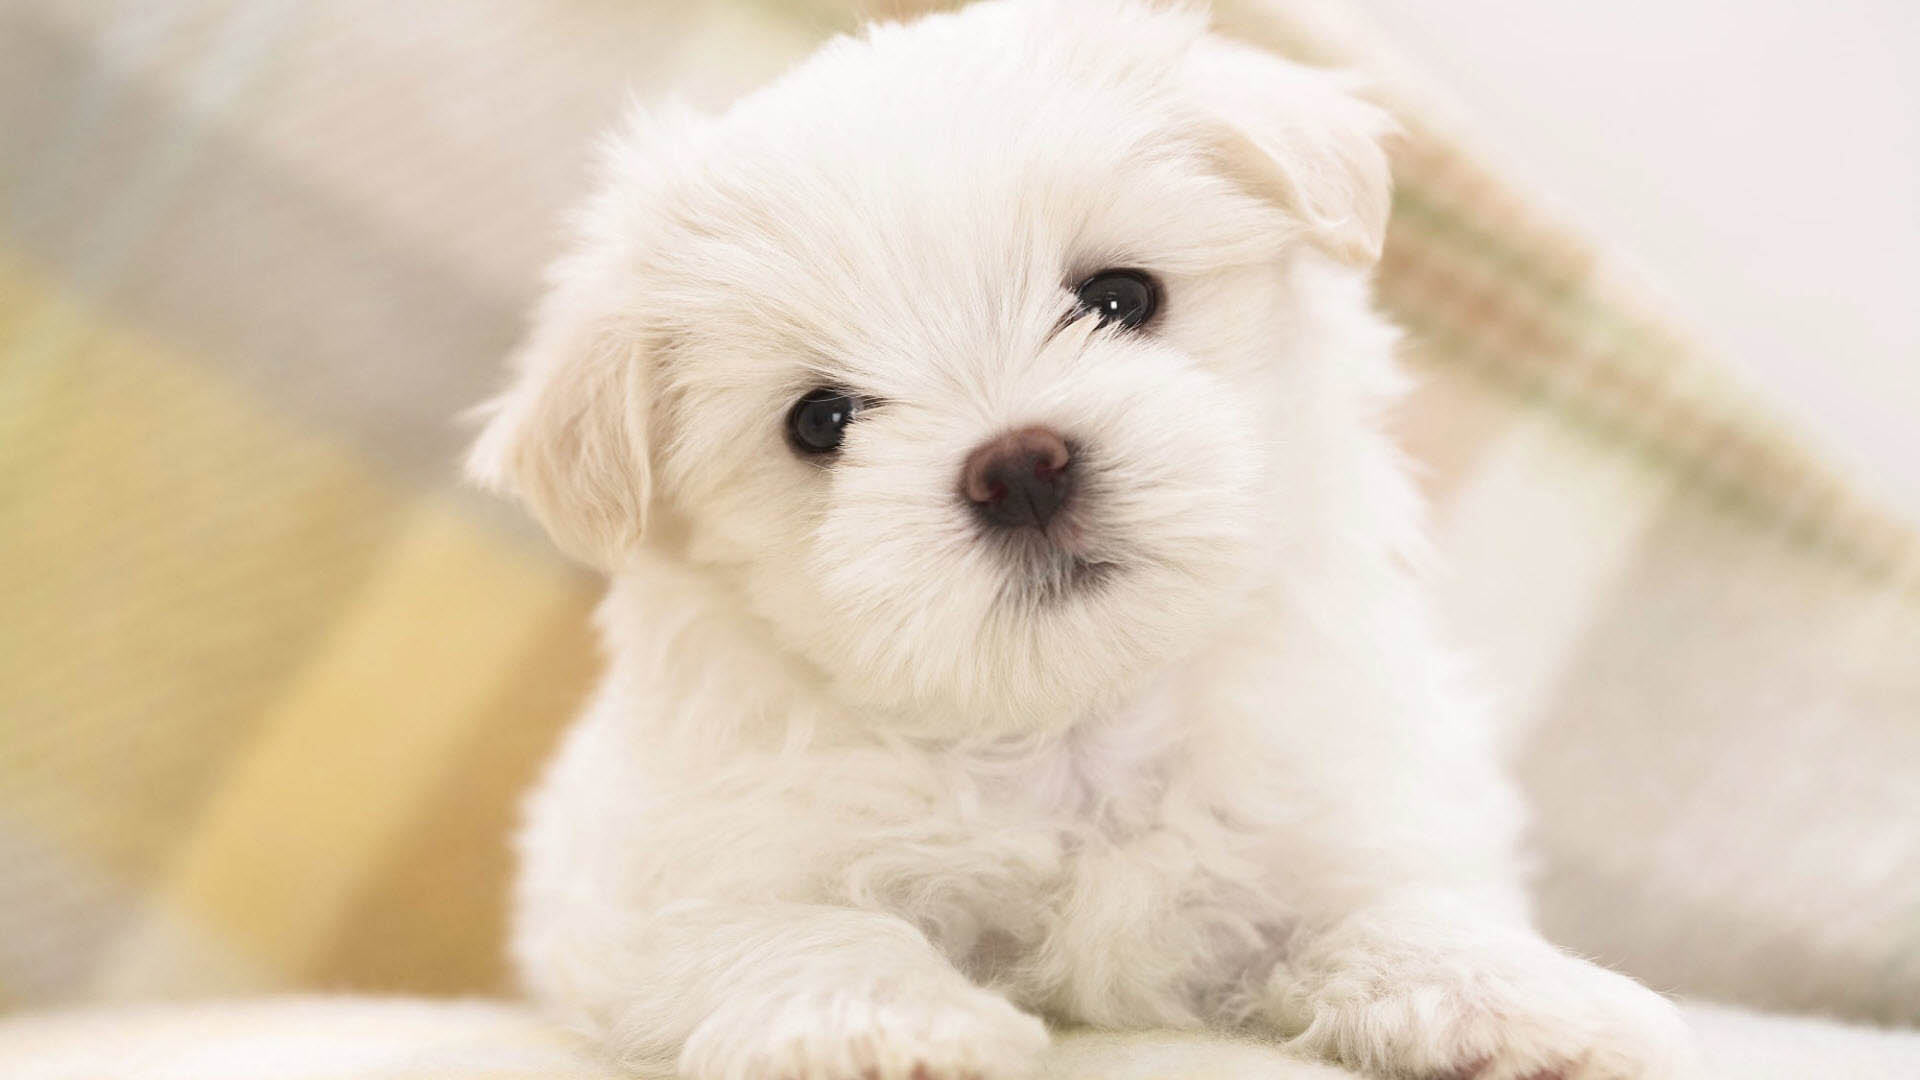 Dogs Wallpapers HD Pictures One HD Wallpaper Pictures Backgrounds 1920x1080